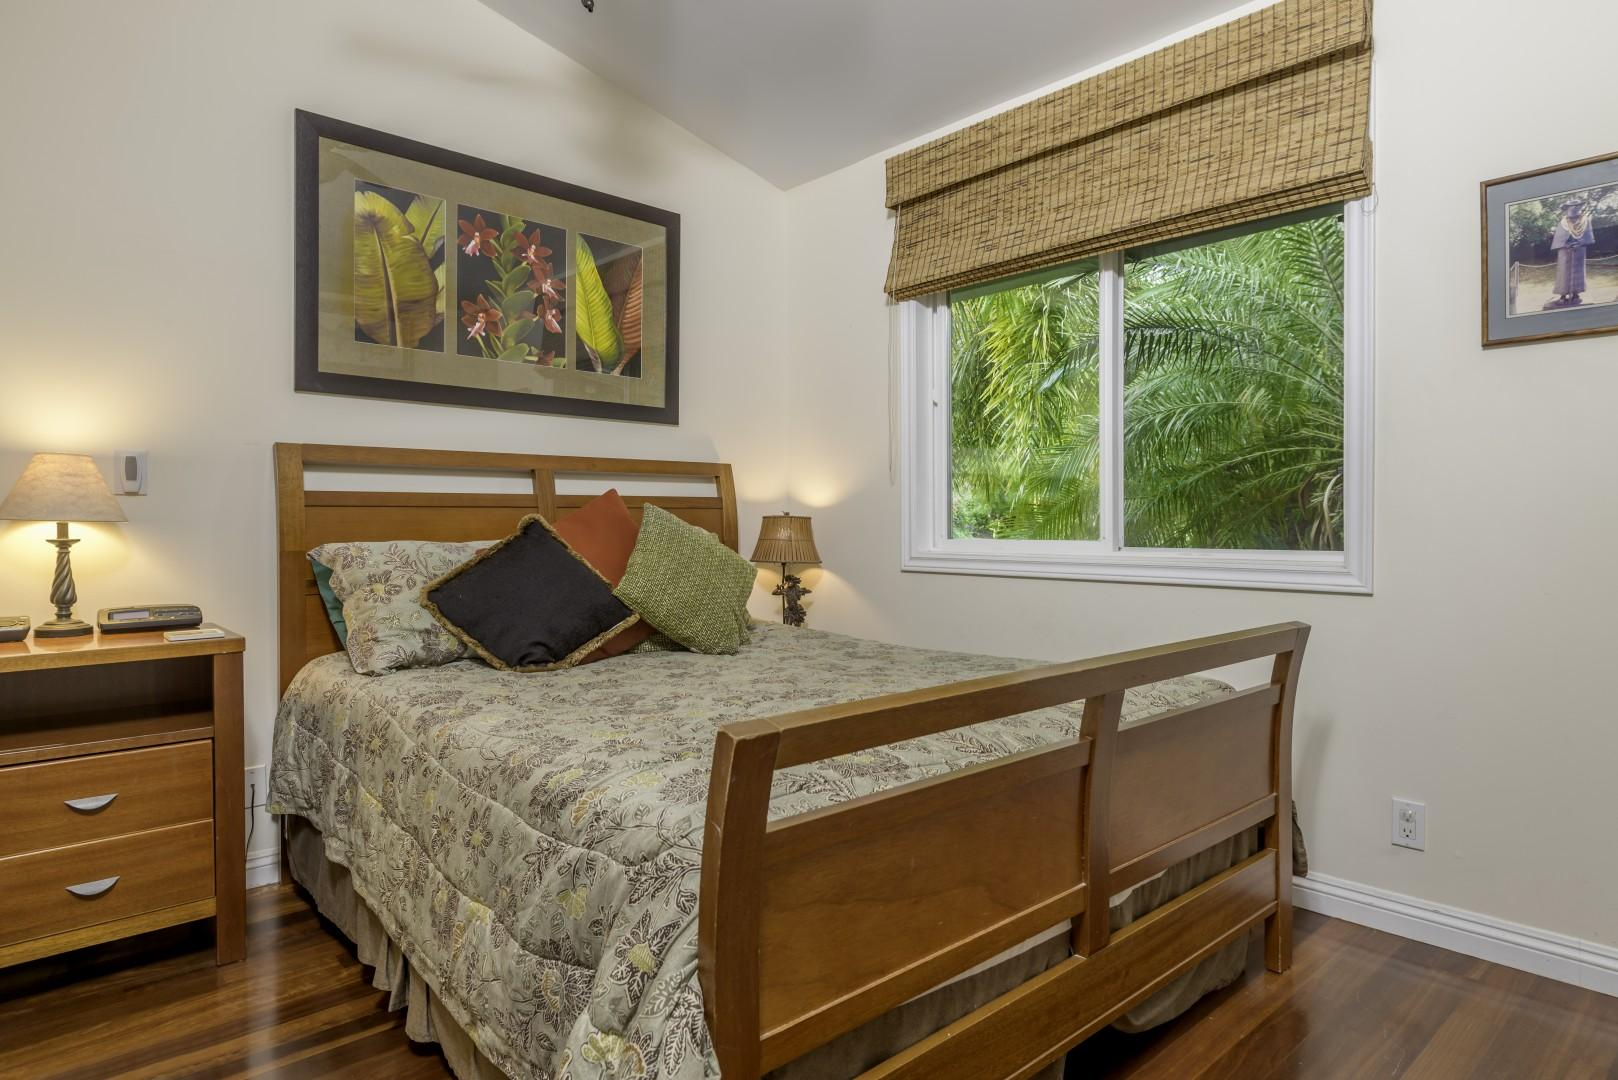 Master bedroom, with queen-size bed and split air conditioning system.